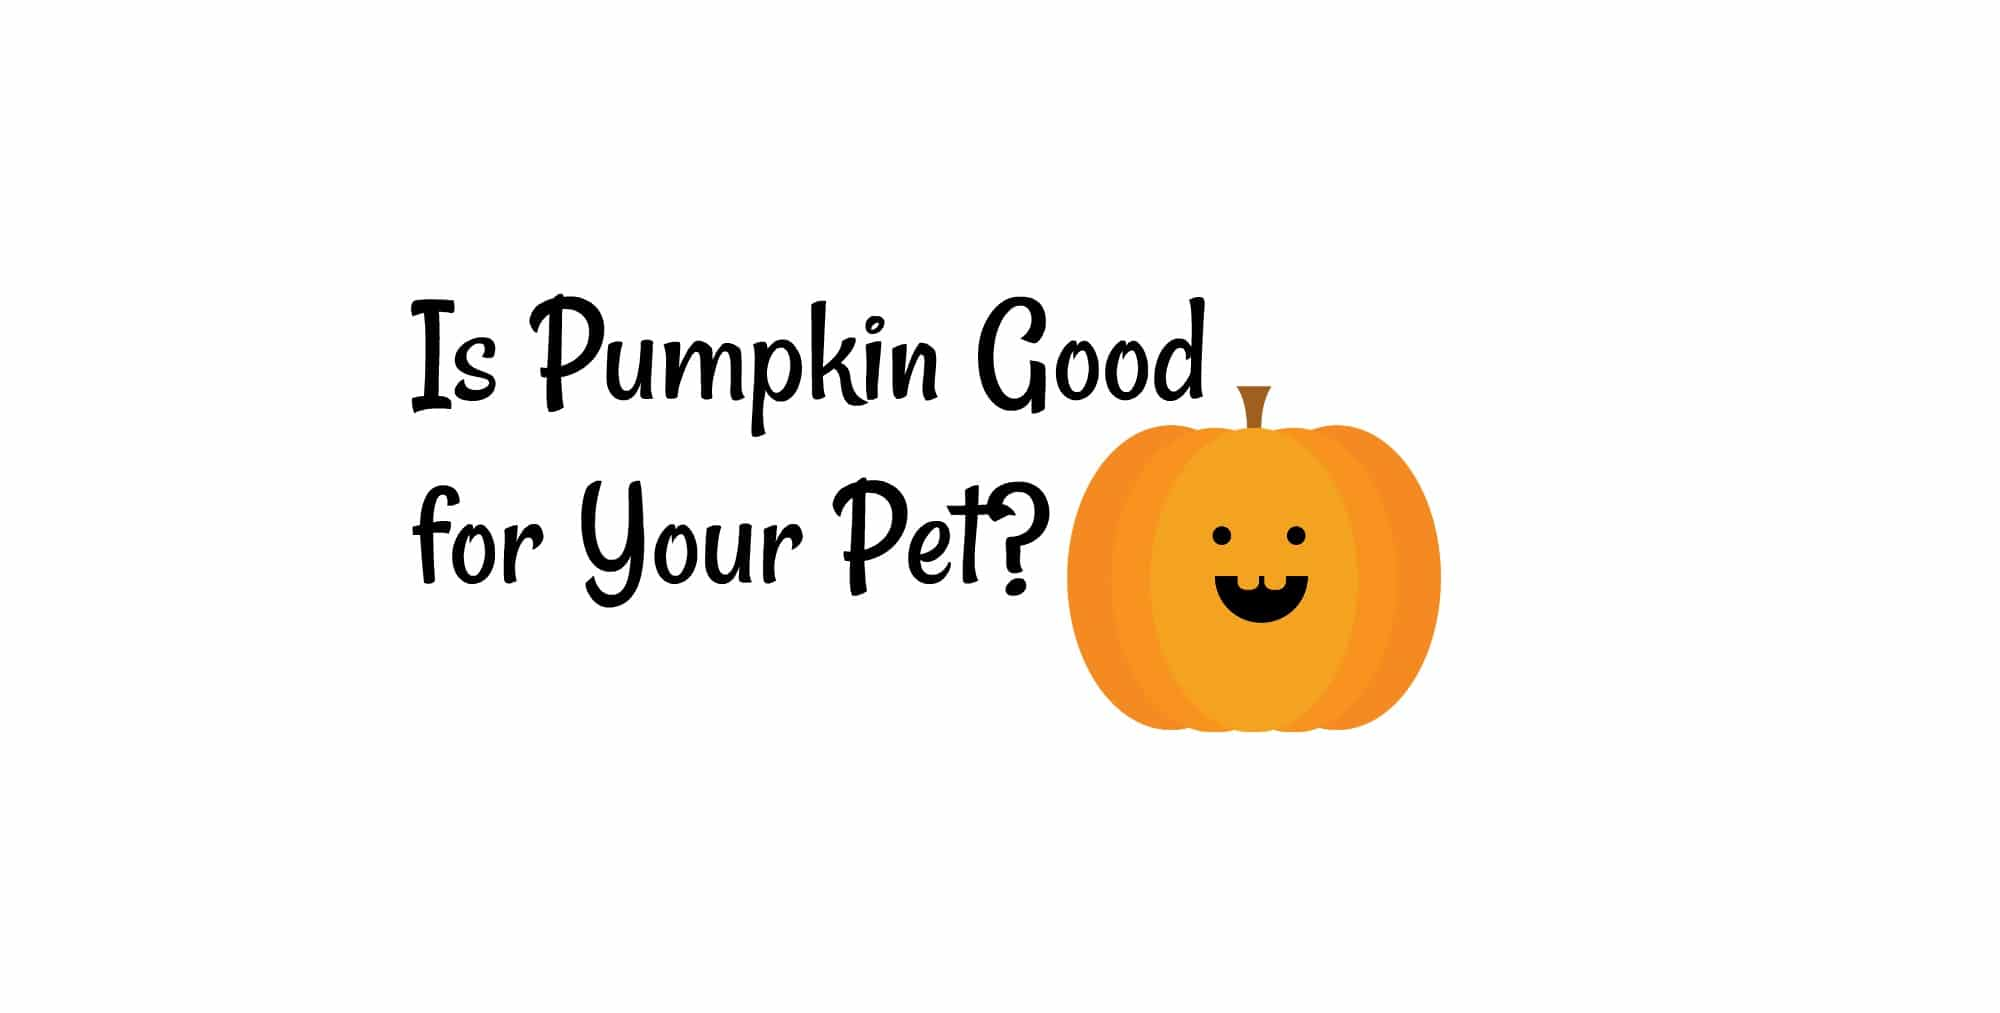 Is Pumpkin Puree Good For Dogs